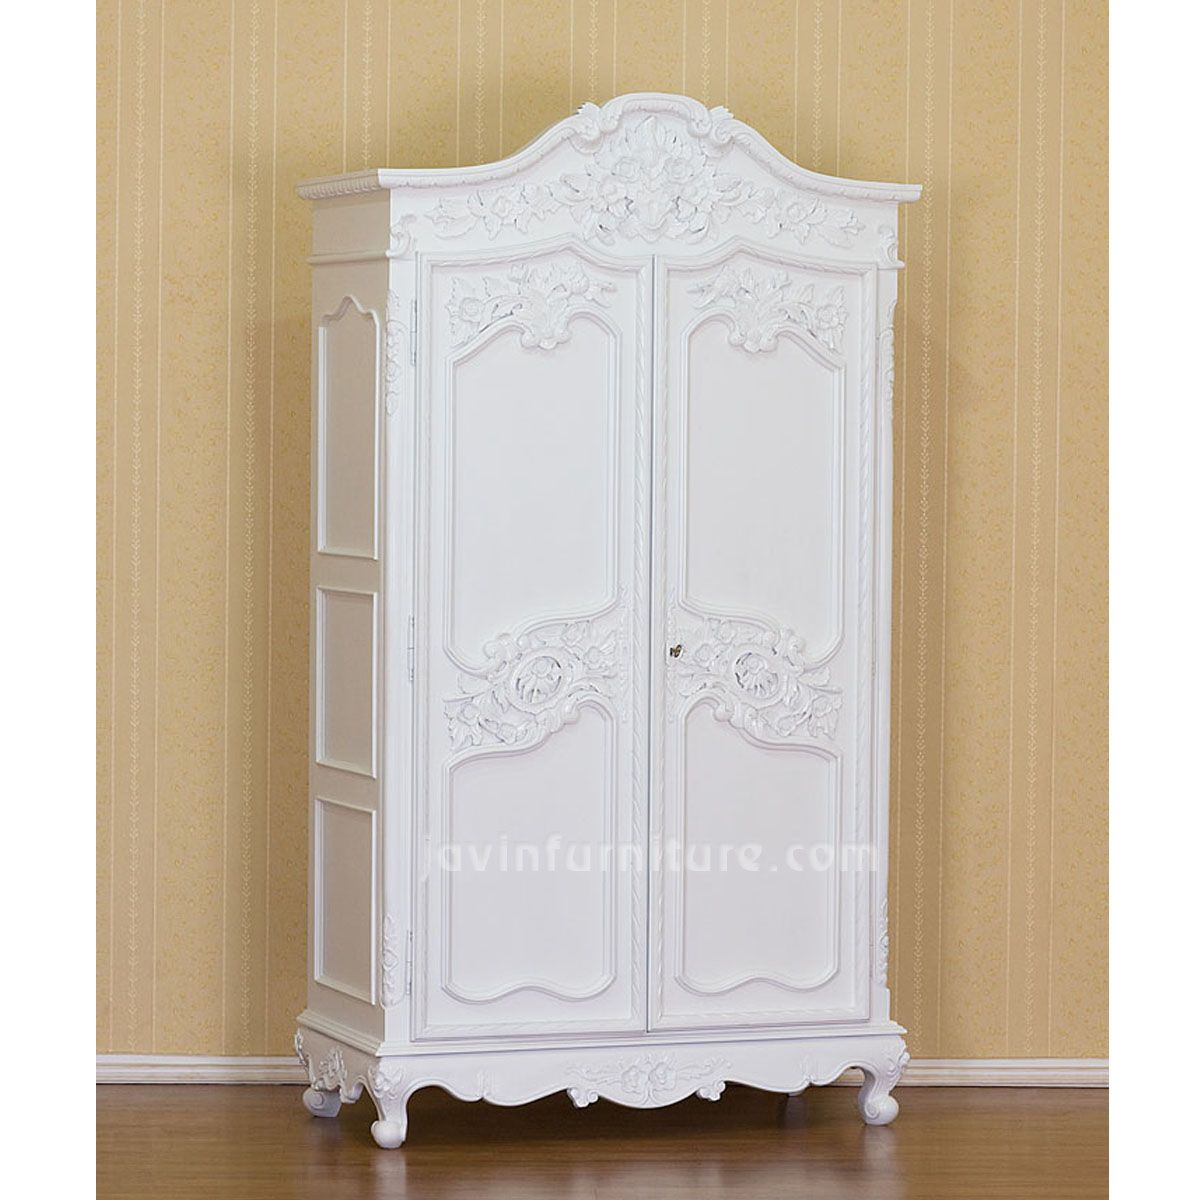 Bedroom Armoire Ikea French Bedroom Chairs Bedroom Room Interior Design Bedroom Armoires: French Armoire 2 Doors